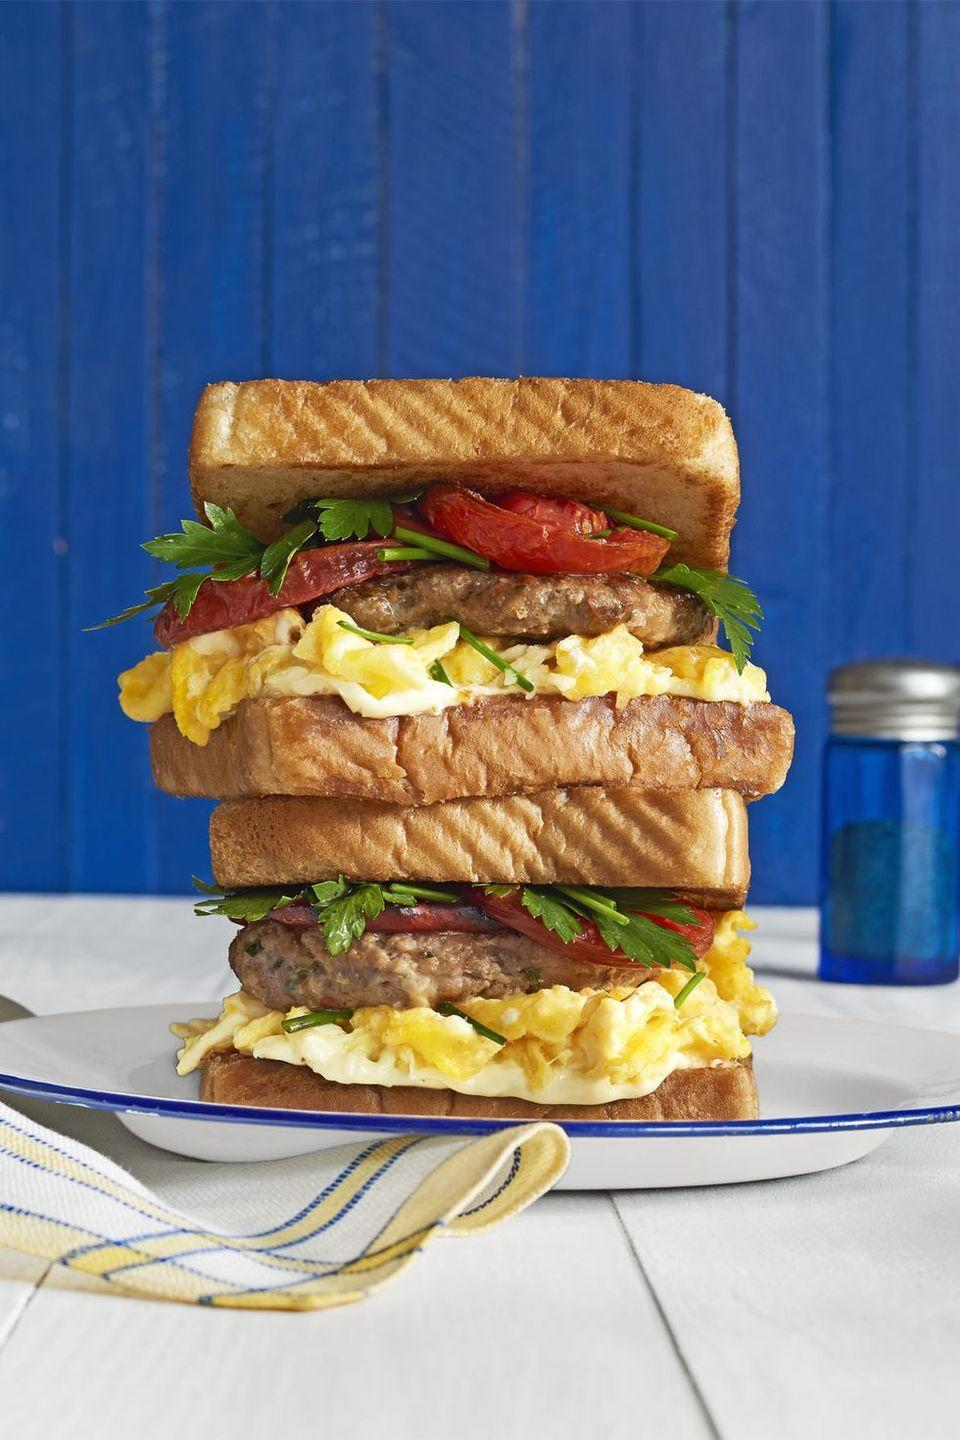 """<p>Stacked high, these breakfast sandwiches have everything Dad is craving: sausage, eggs, and roasted tomatoes!<strong><a href=""""https://www.countryliving.com/food-drinks/recipes/a41634/loaded-breakfast-sandwiches-recipe/"""" rel=""""nofollow noopener"""" target=""""_blank"""" data-ylk=""""slk:"""" class=""""link rapid-noclick-resp""""><br></a></strong></p><p><strong><a href=""""https://www.countryliving.com/food-drinks/recipes/a41634/loaded-breakfast-sandwiches-recipe/"""" rel=""""nofollow noopener"""" target=""""_blank"""" data-ylk=""""slk:Get the recipe"""" class=""""link rapid-noclick-resp"""">Get the recipe</a>.</strong> </p>"""